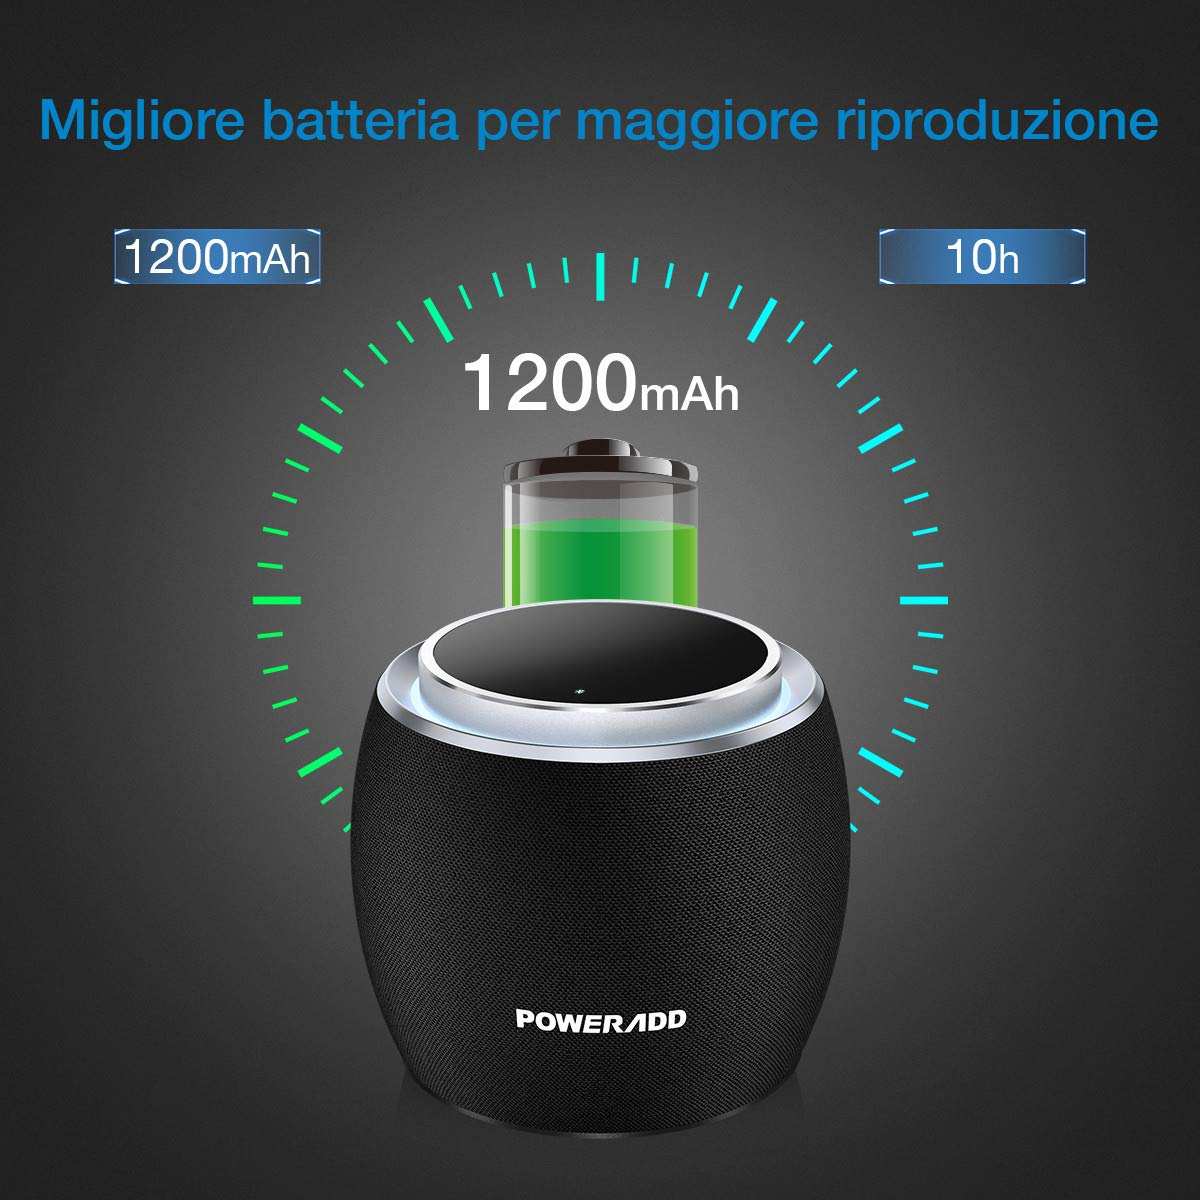 POWERADD Altoparlante Bluetooth Portatile, Cassa Bluetooth Dee-G Mini Con Speaker Da 5 Watt e Subwoofer Passivo, Bluetooth Avanzato 4.2 Piccolo e Carino Compatibile Con IOS, Android.